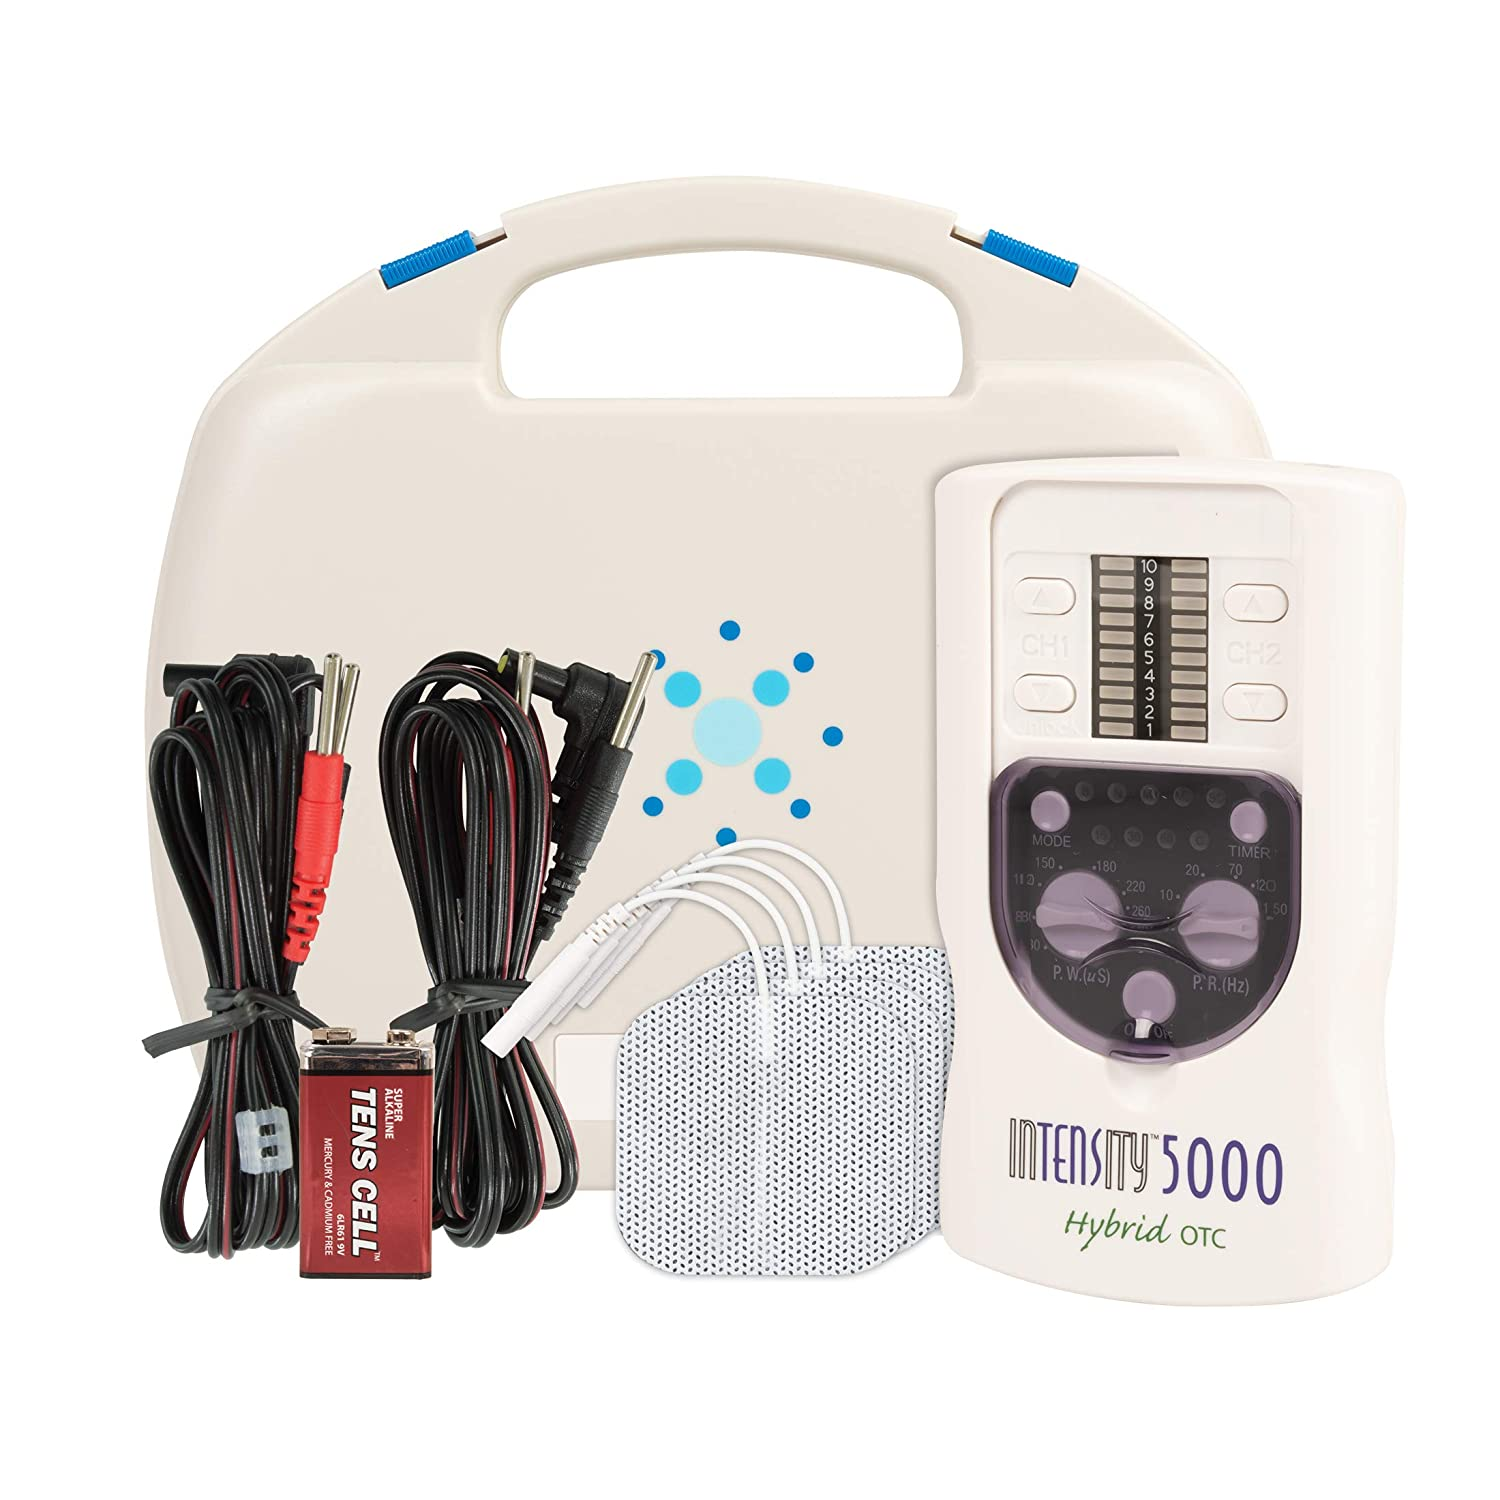 InTENSity at home transcutaneous electronic muscle stimulator